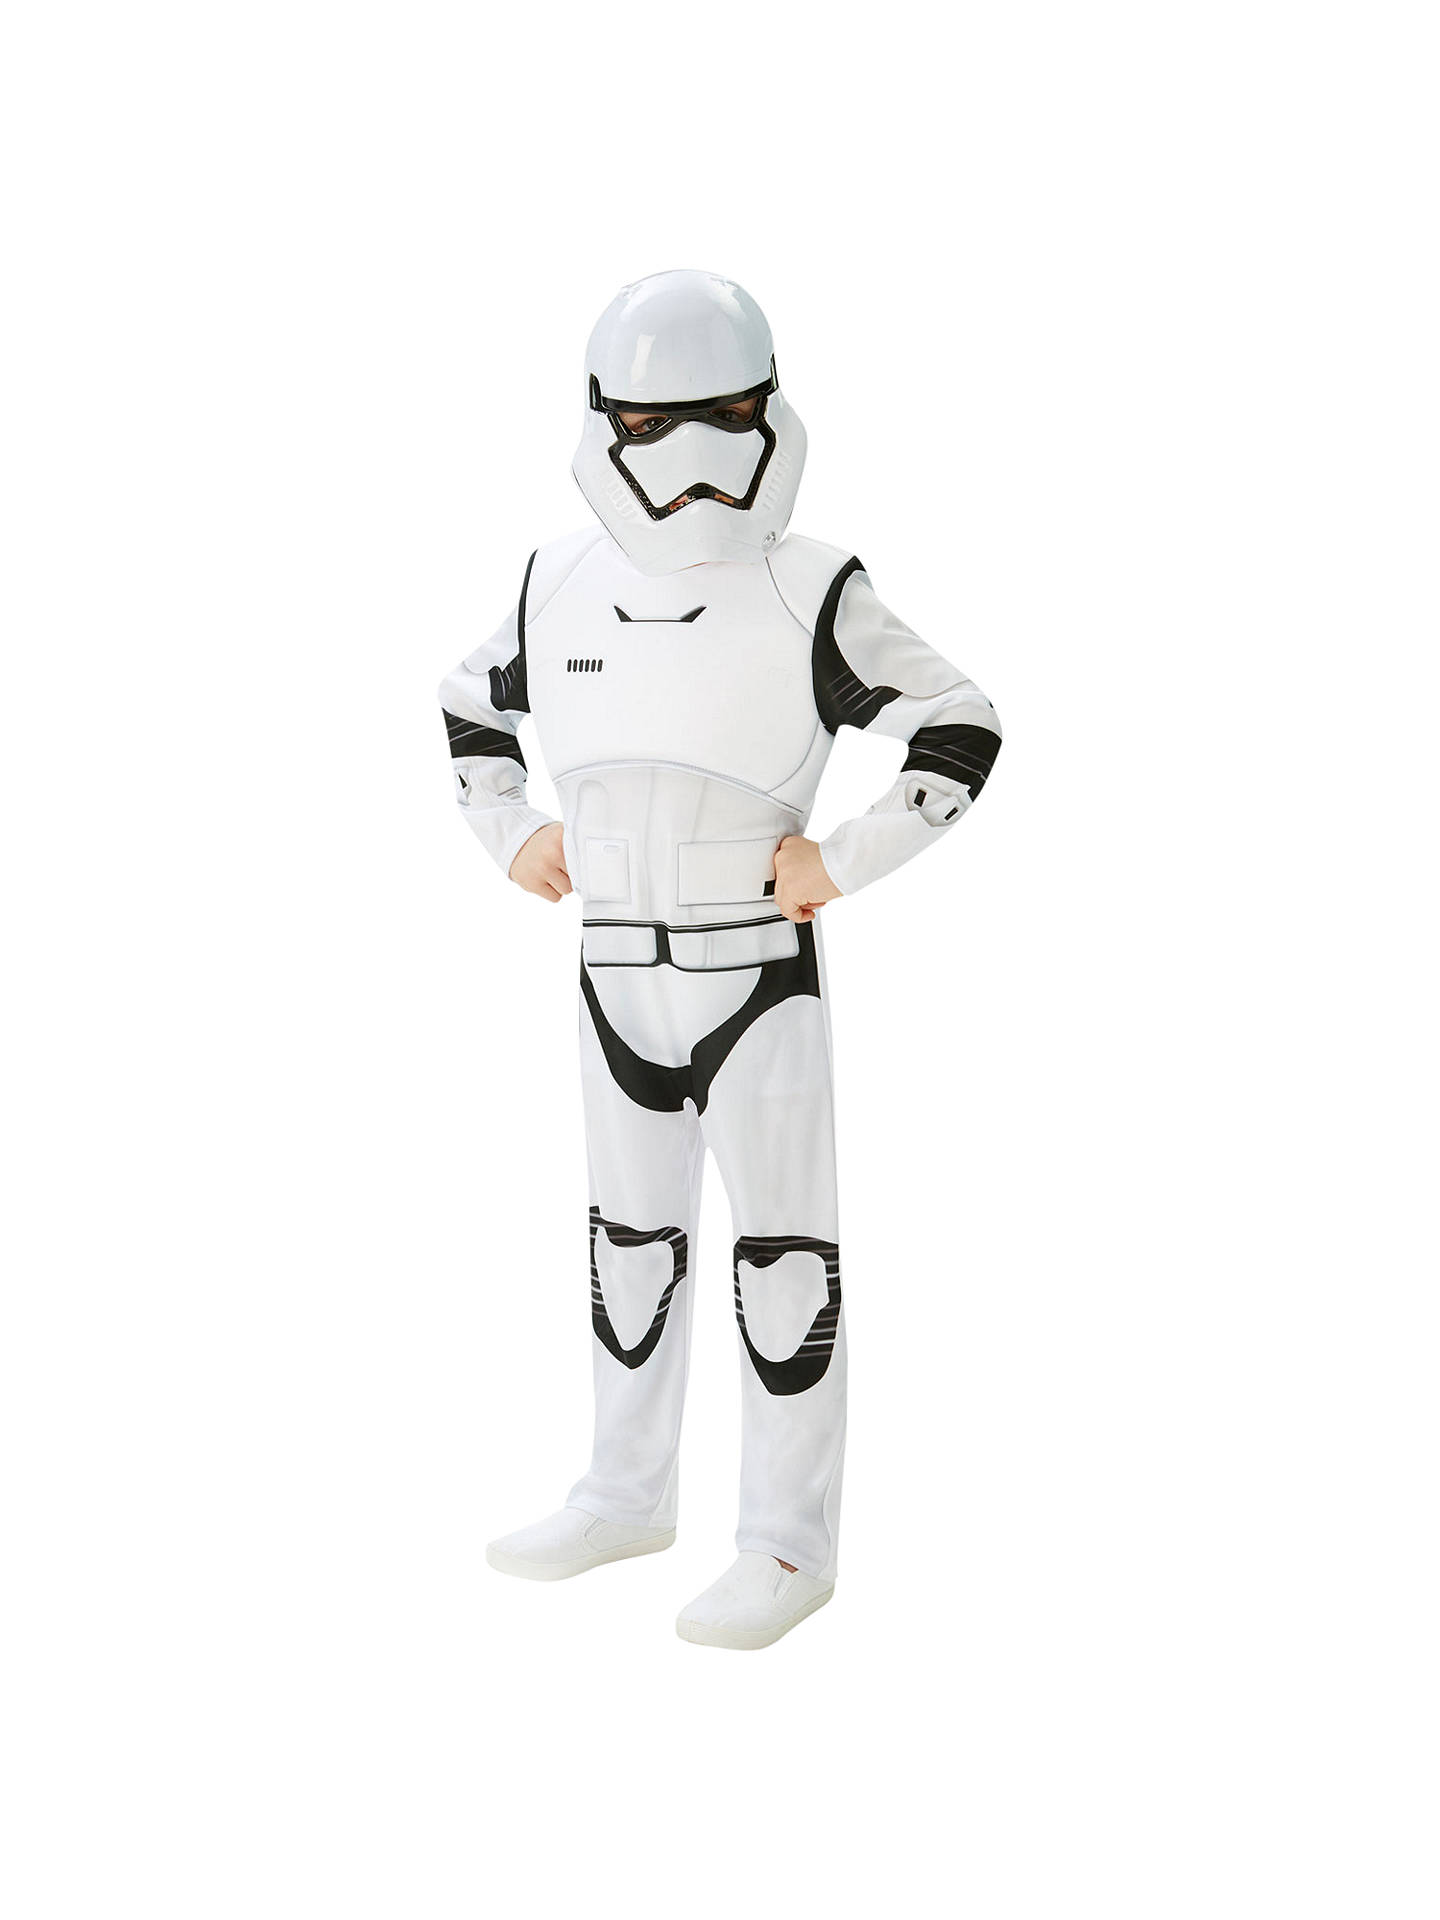 Buy Star Wars Episode VII: The Force Awakens Stormtrooper Children's Costume, 5-6 years Online at johnlewis.com